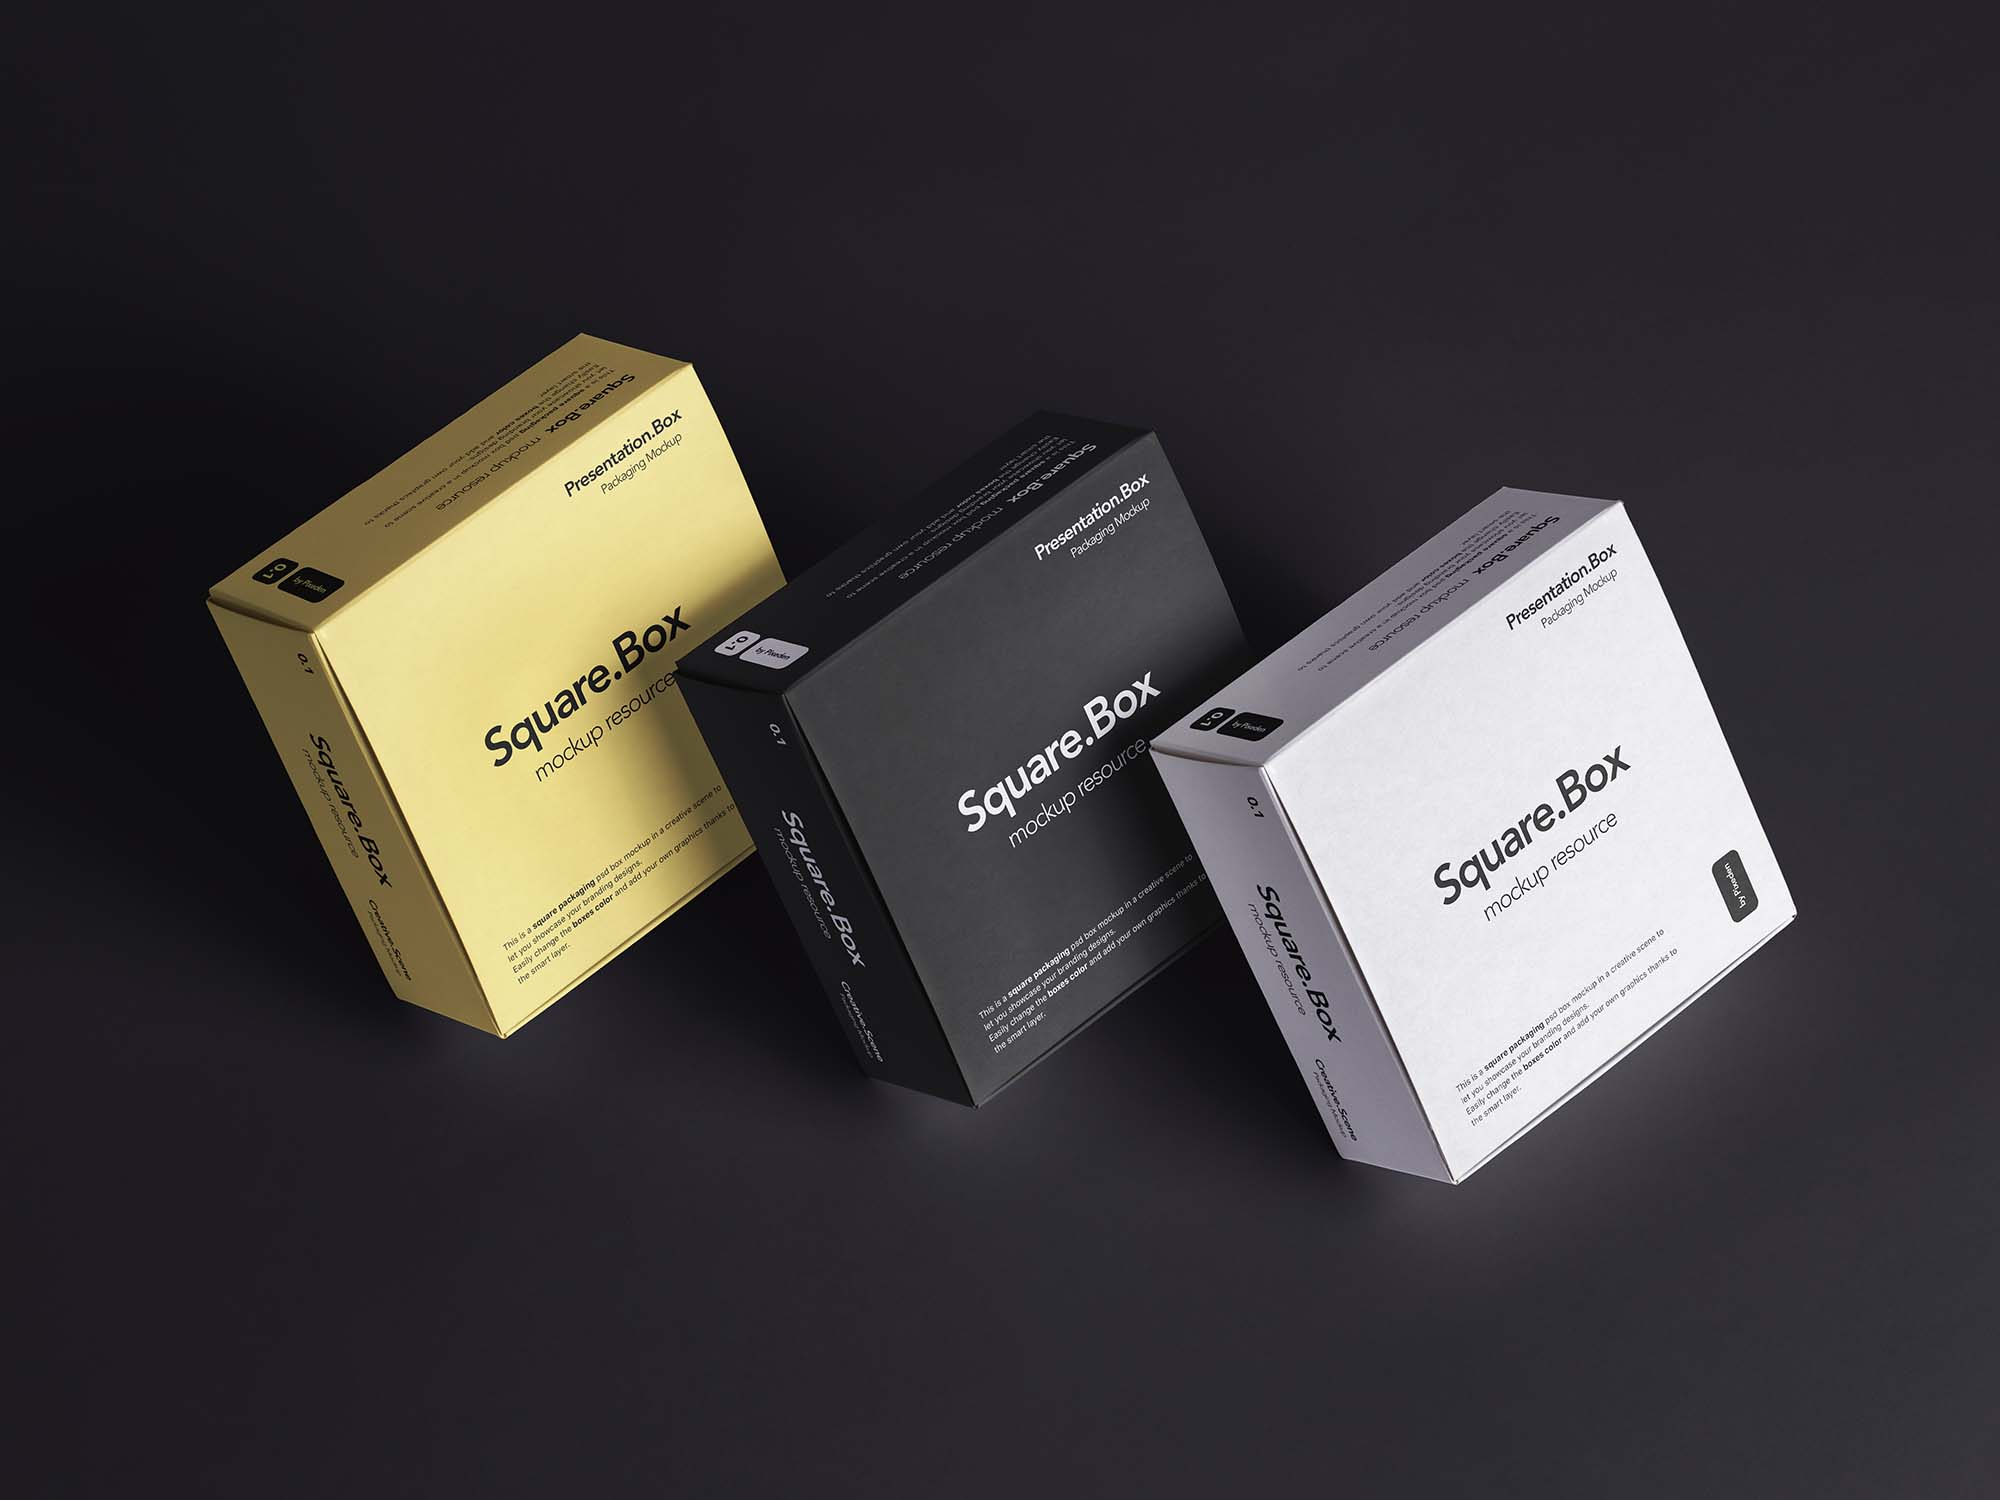 Square Box Package Mockup 1